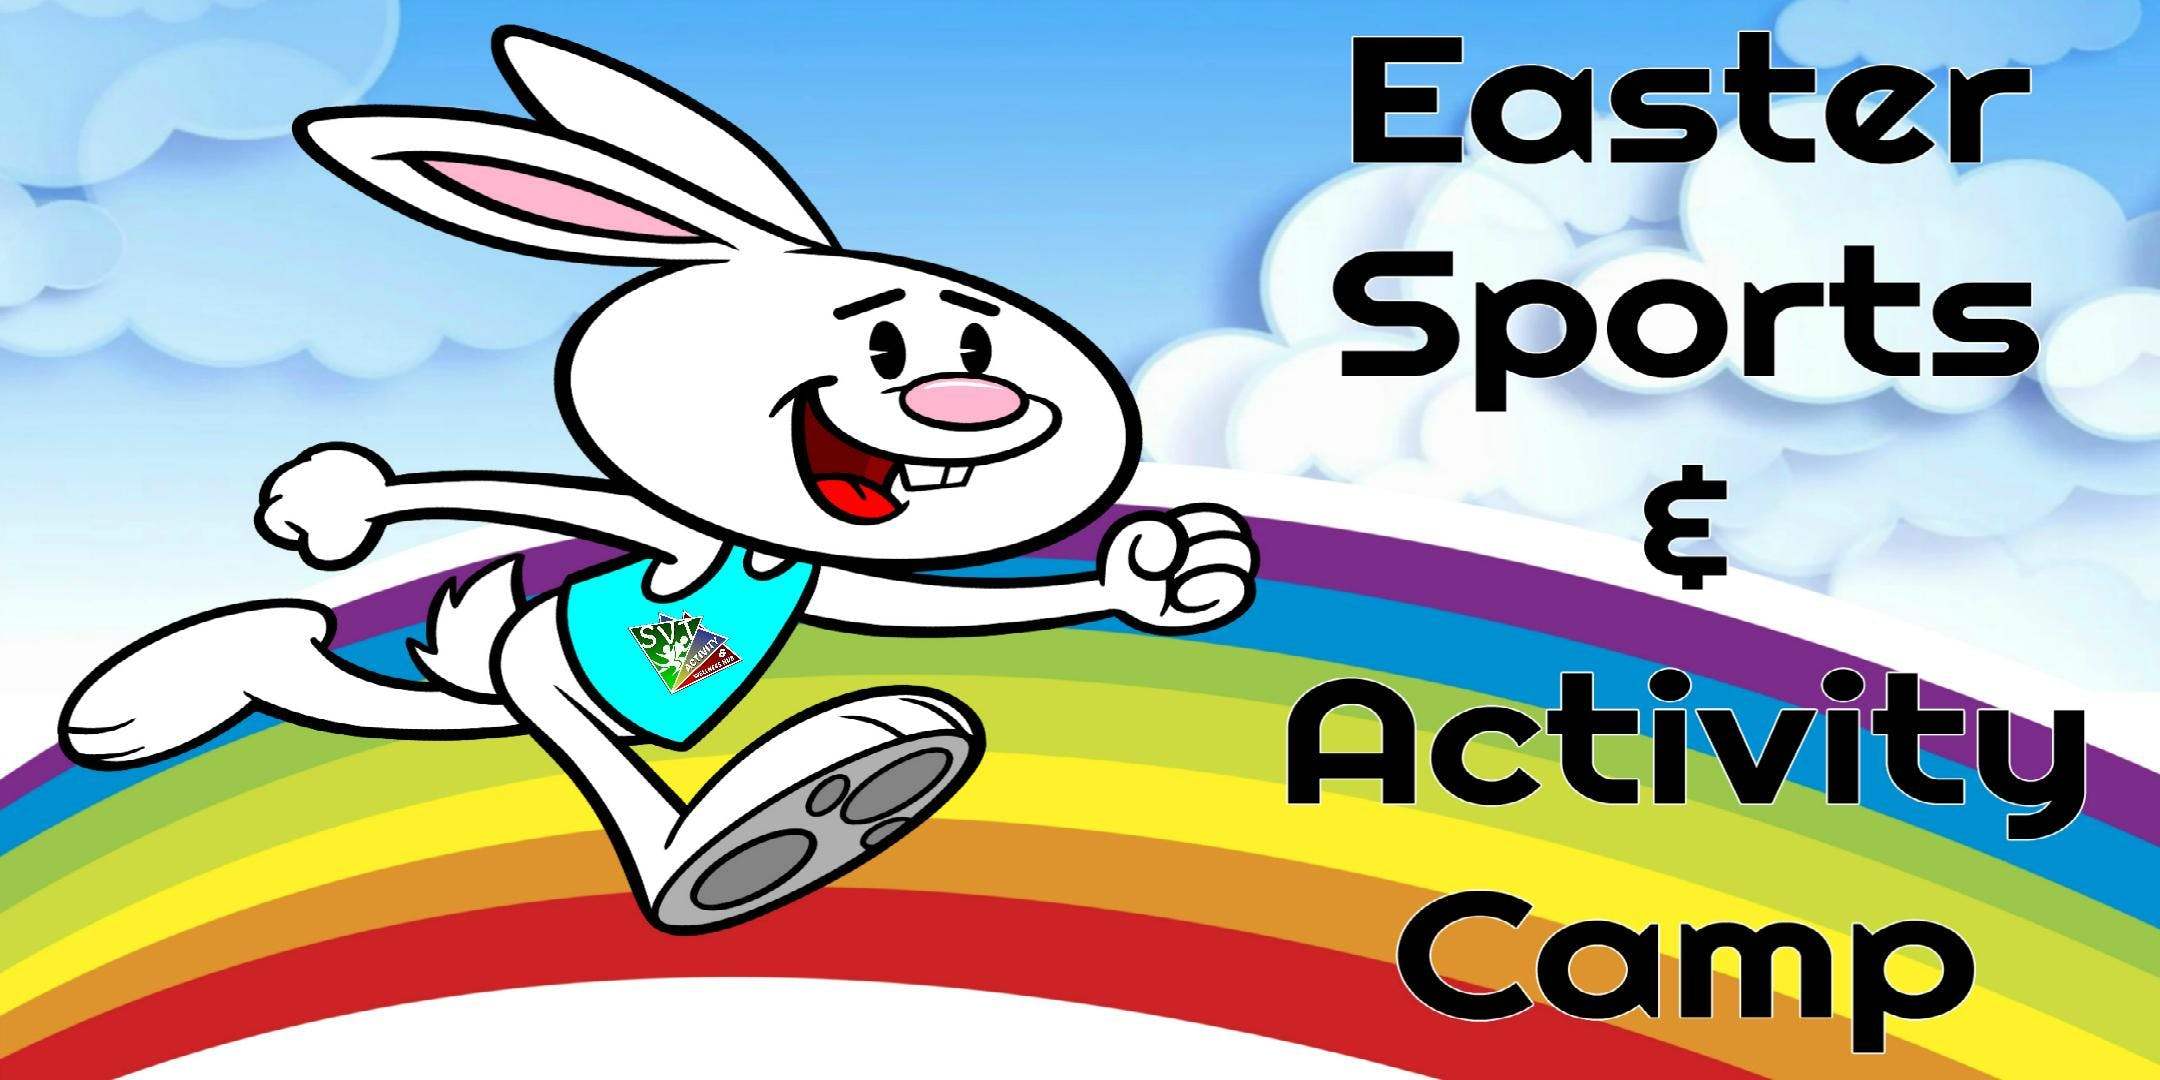 Easter Sports & Activity Camp